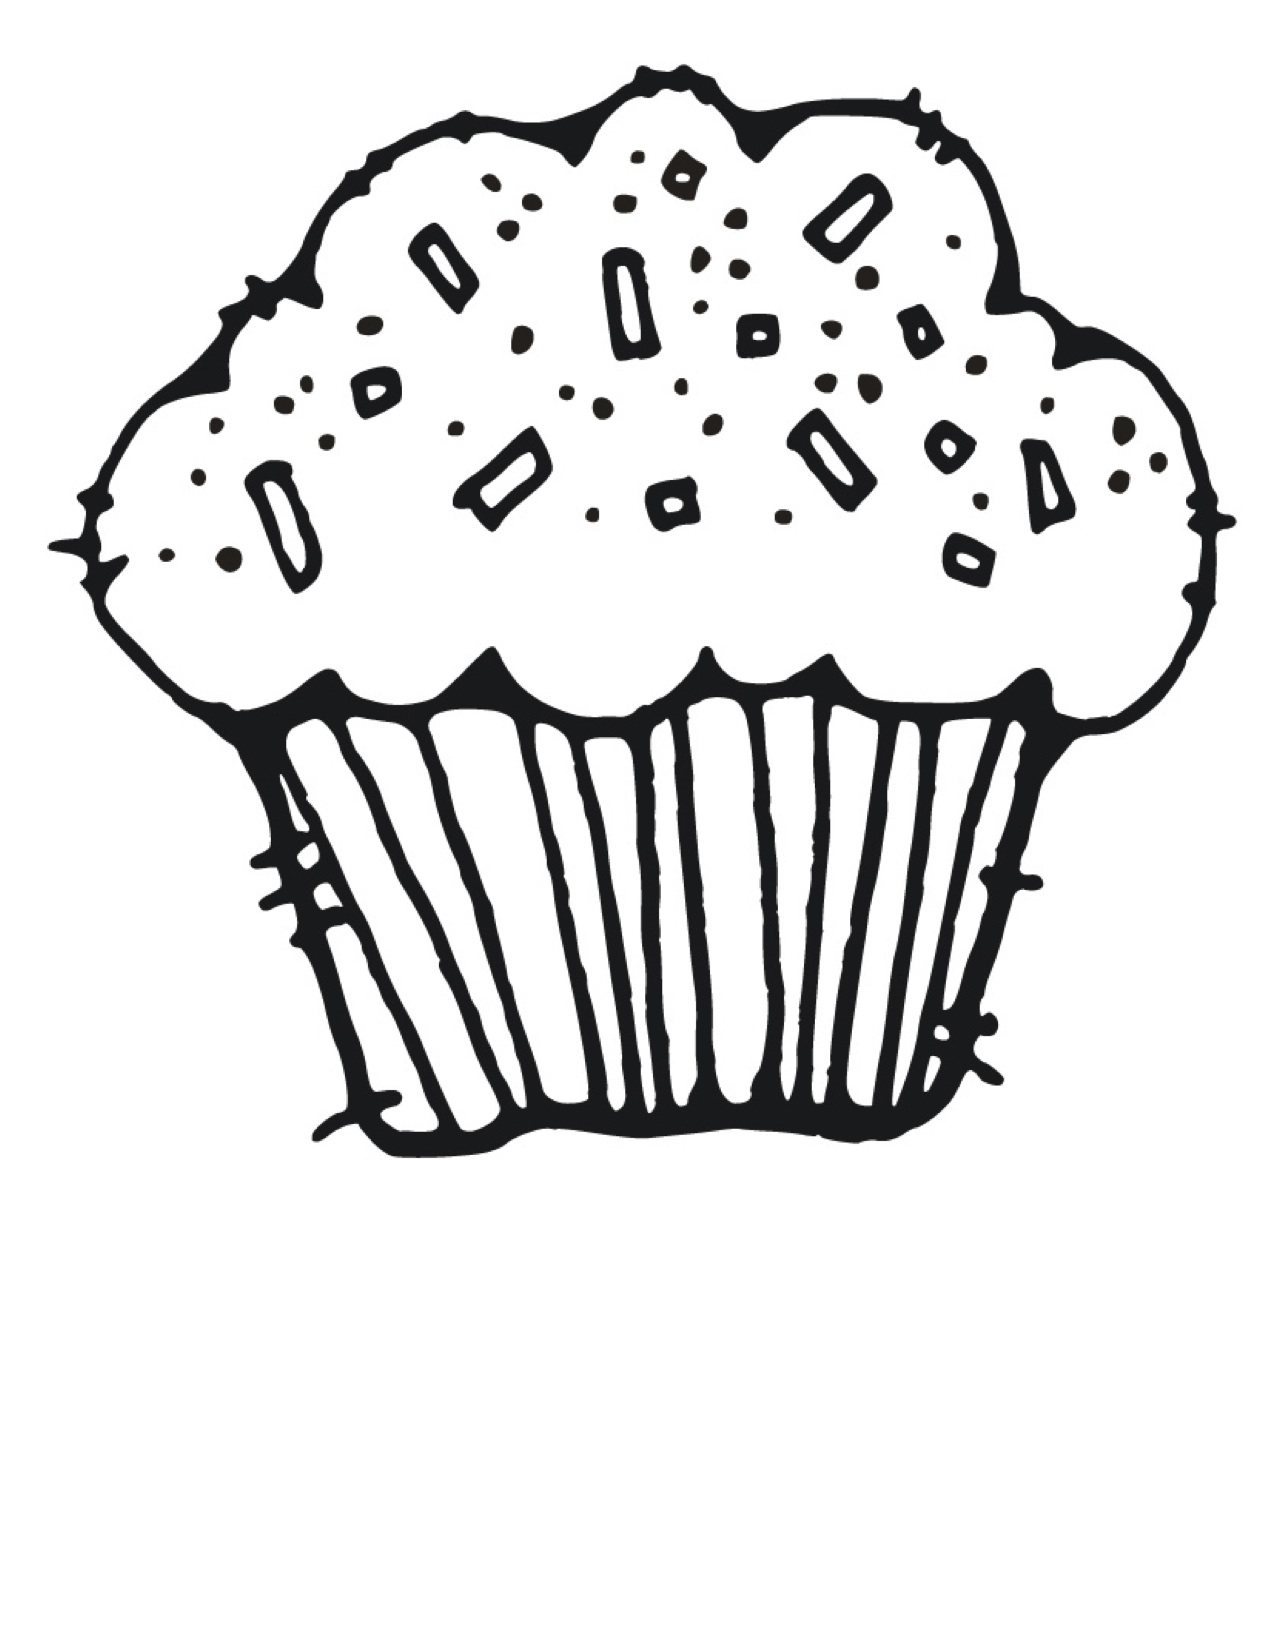 1275x1650 Largest Cupcake Coloring Pages To Print Muffin Page Free Printable